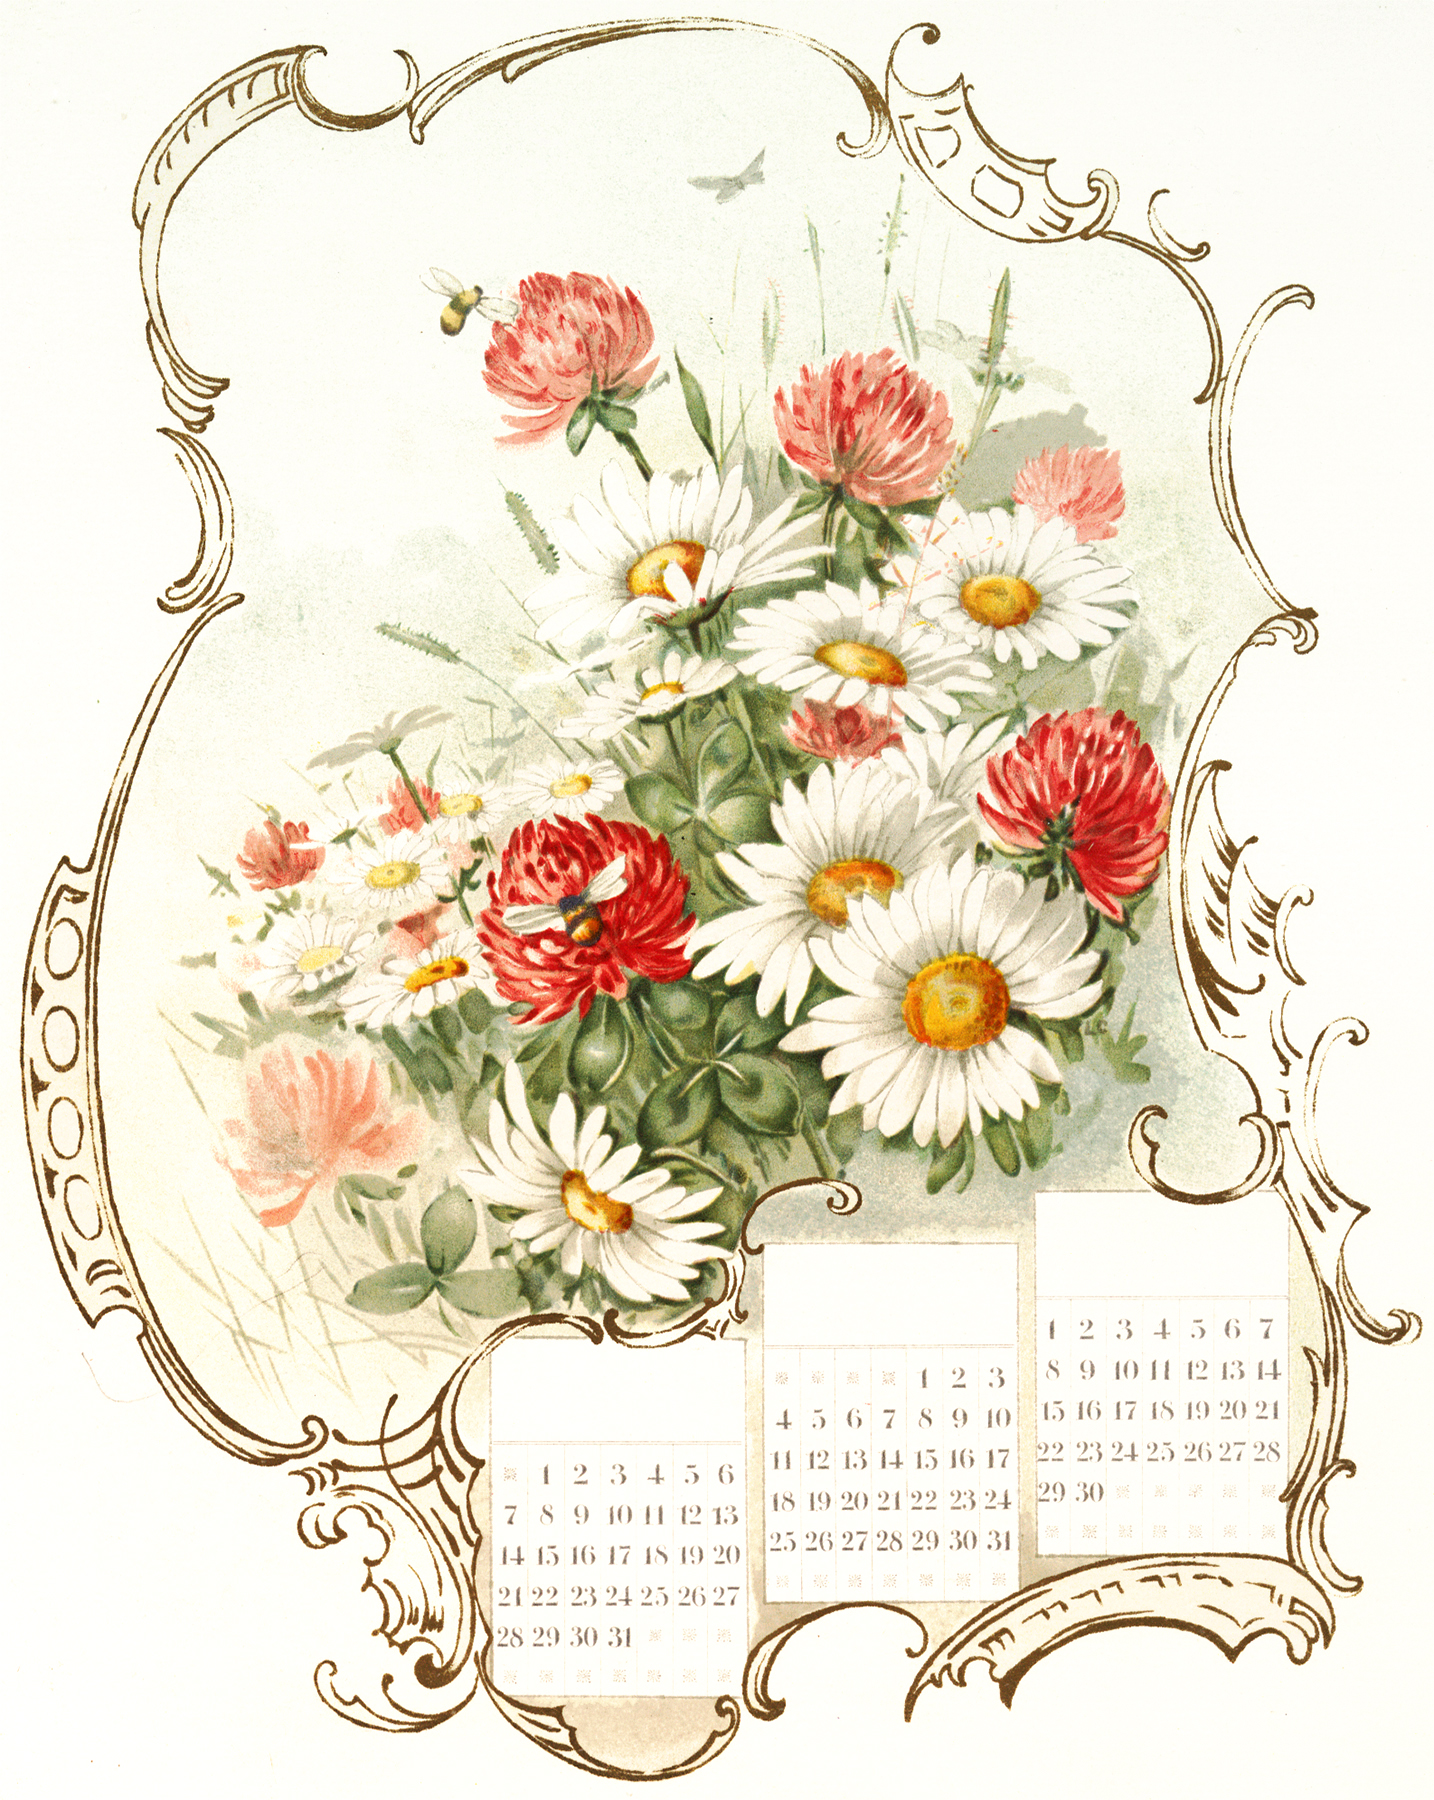 Beautiful Floral Calendar Image